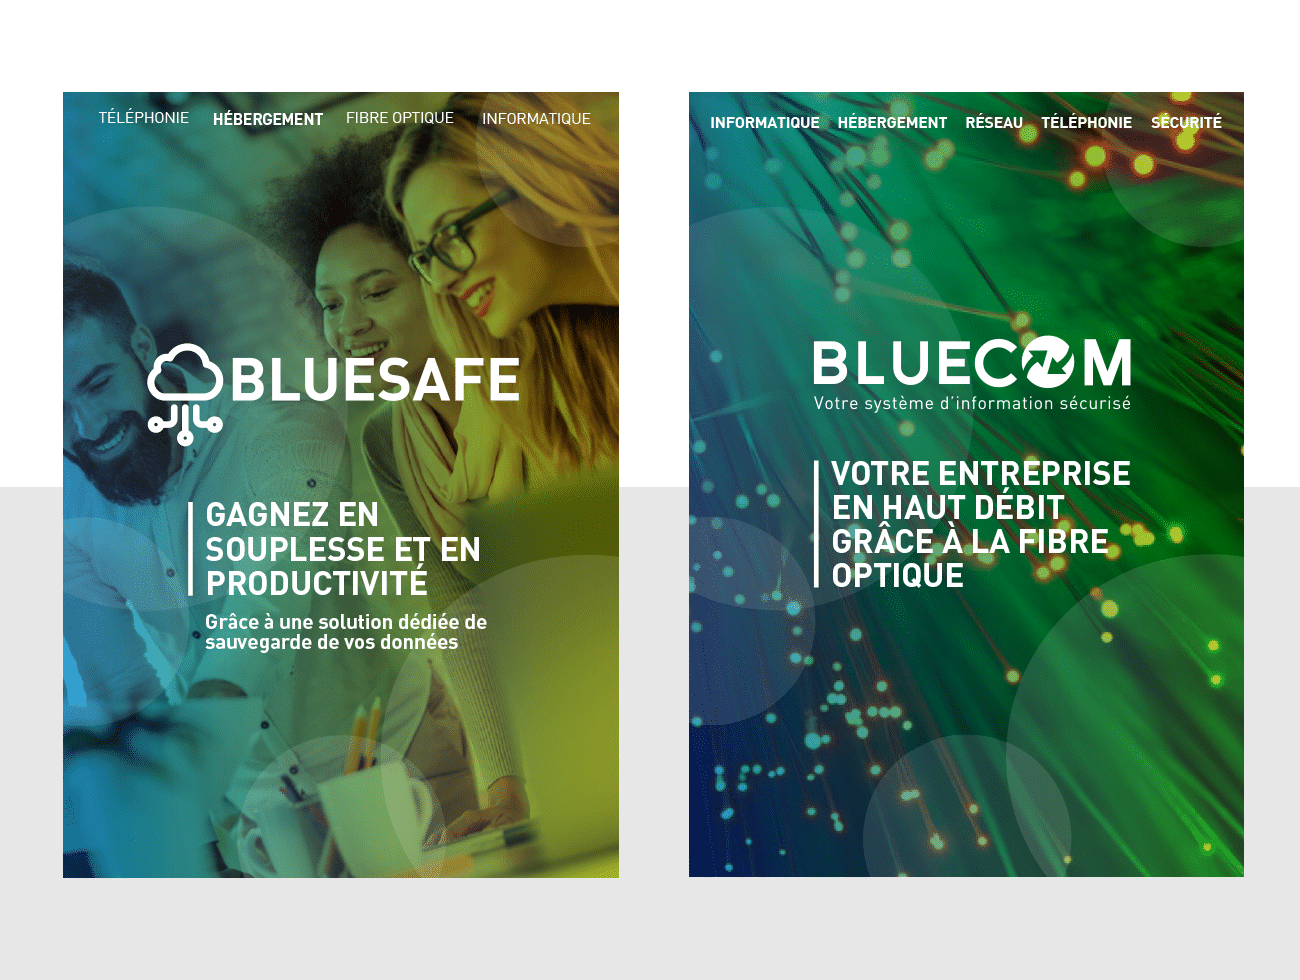 BLUECOM-SMAC-Plaquette-Commerciale-Supports de communication